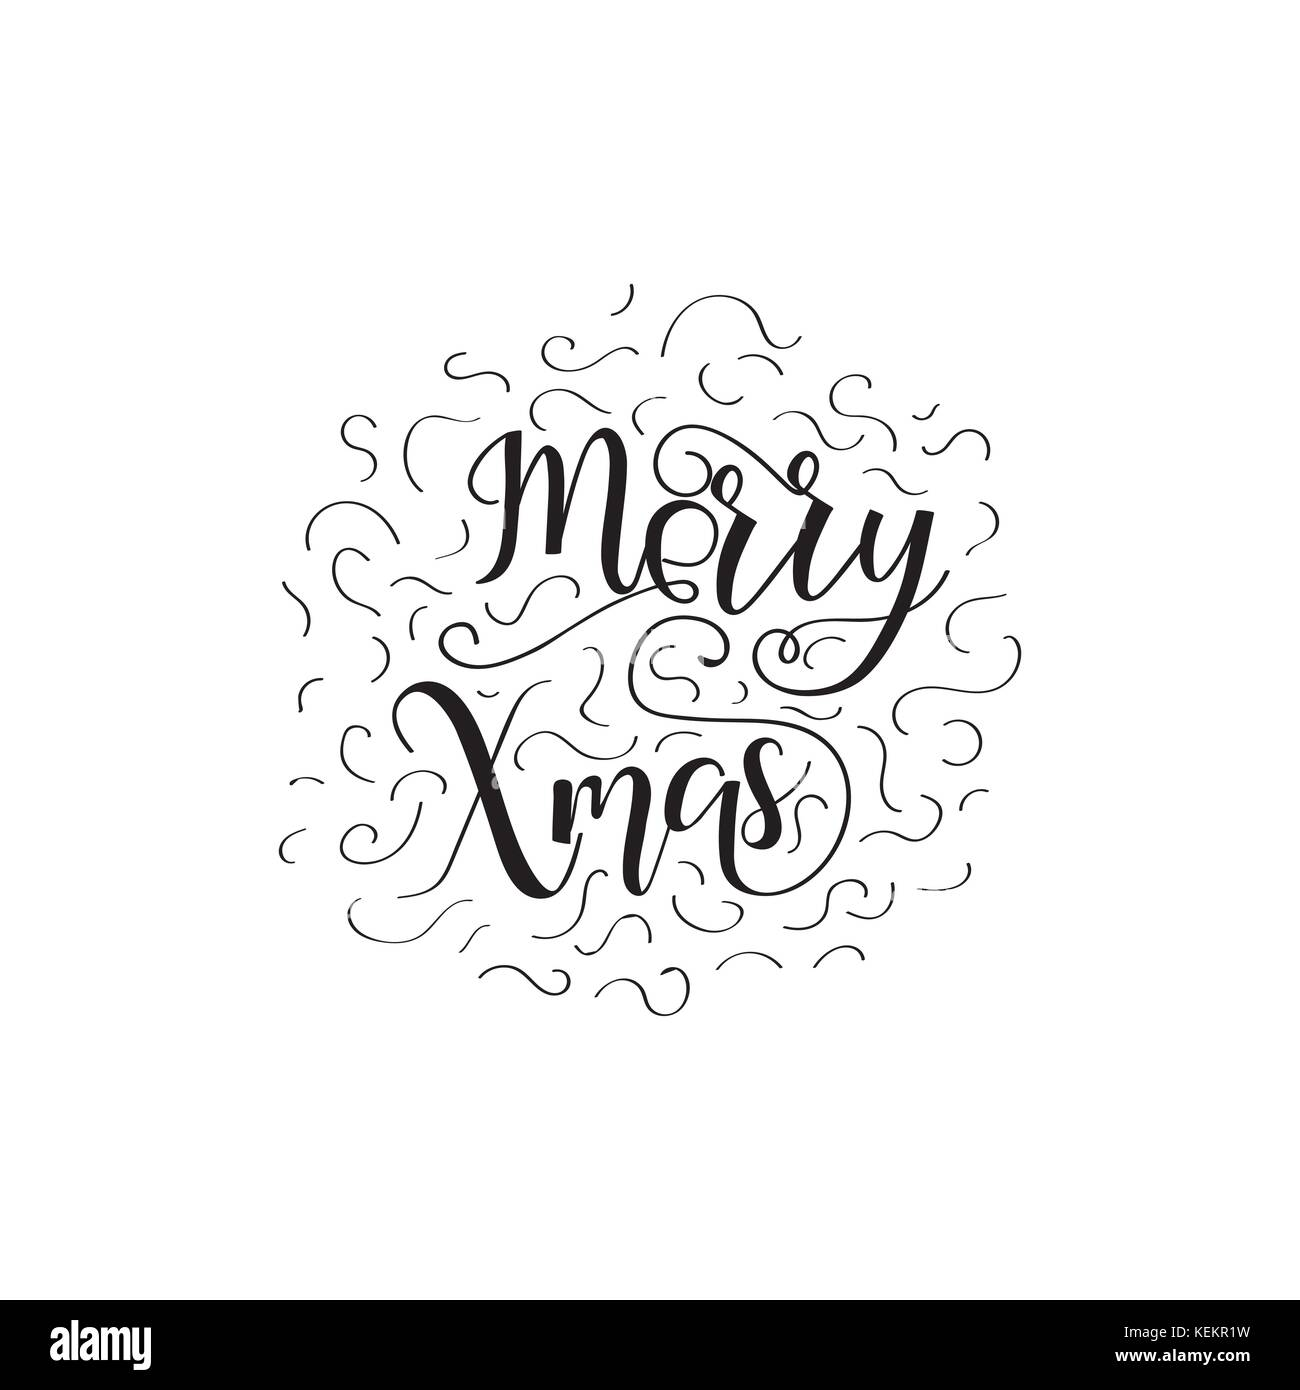 merry xmas christmas holiday vector print black lettering hand written text on white background - Merry Christmas Black And White